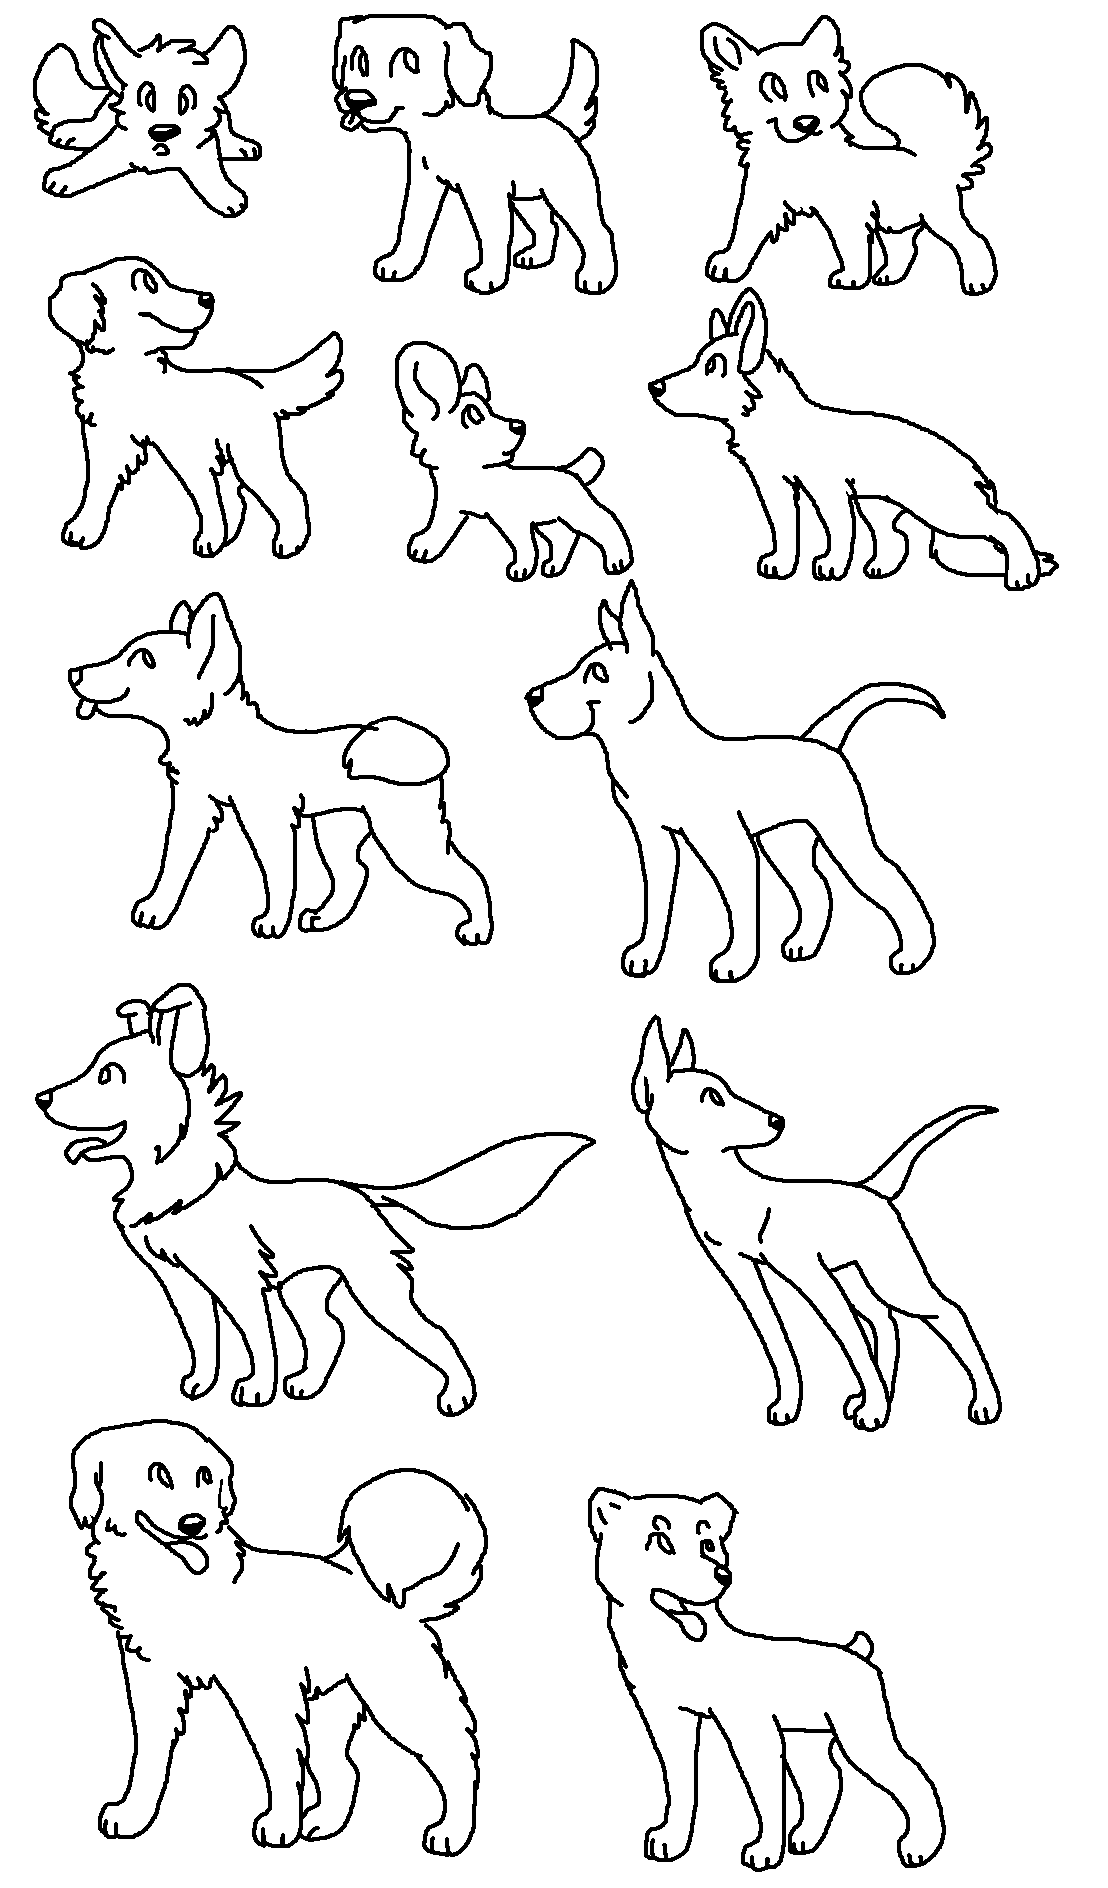 Free MS Paint Dog Breed Batch Lineart